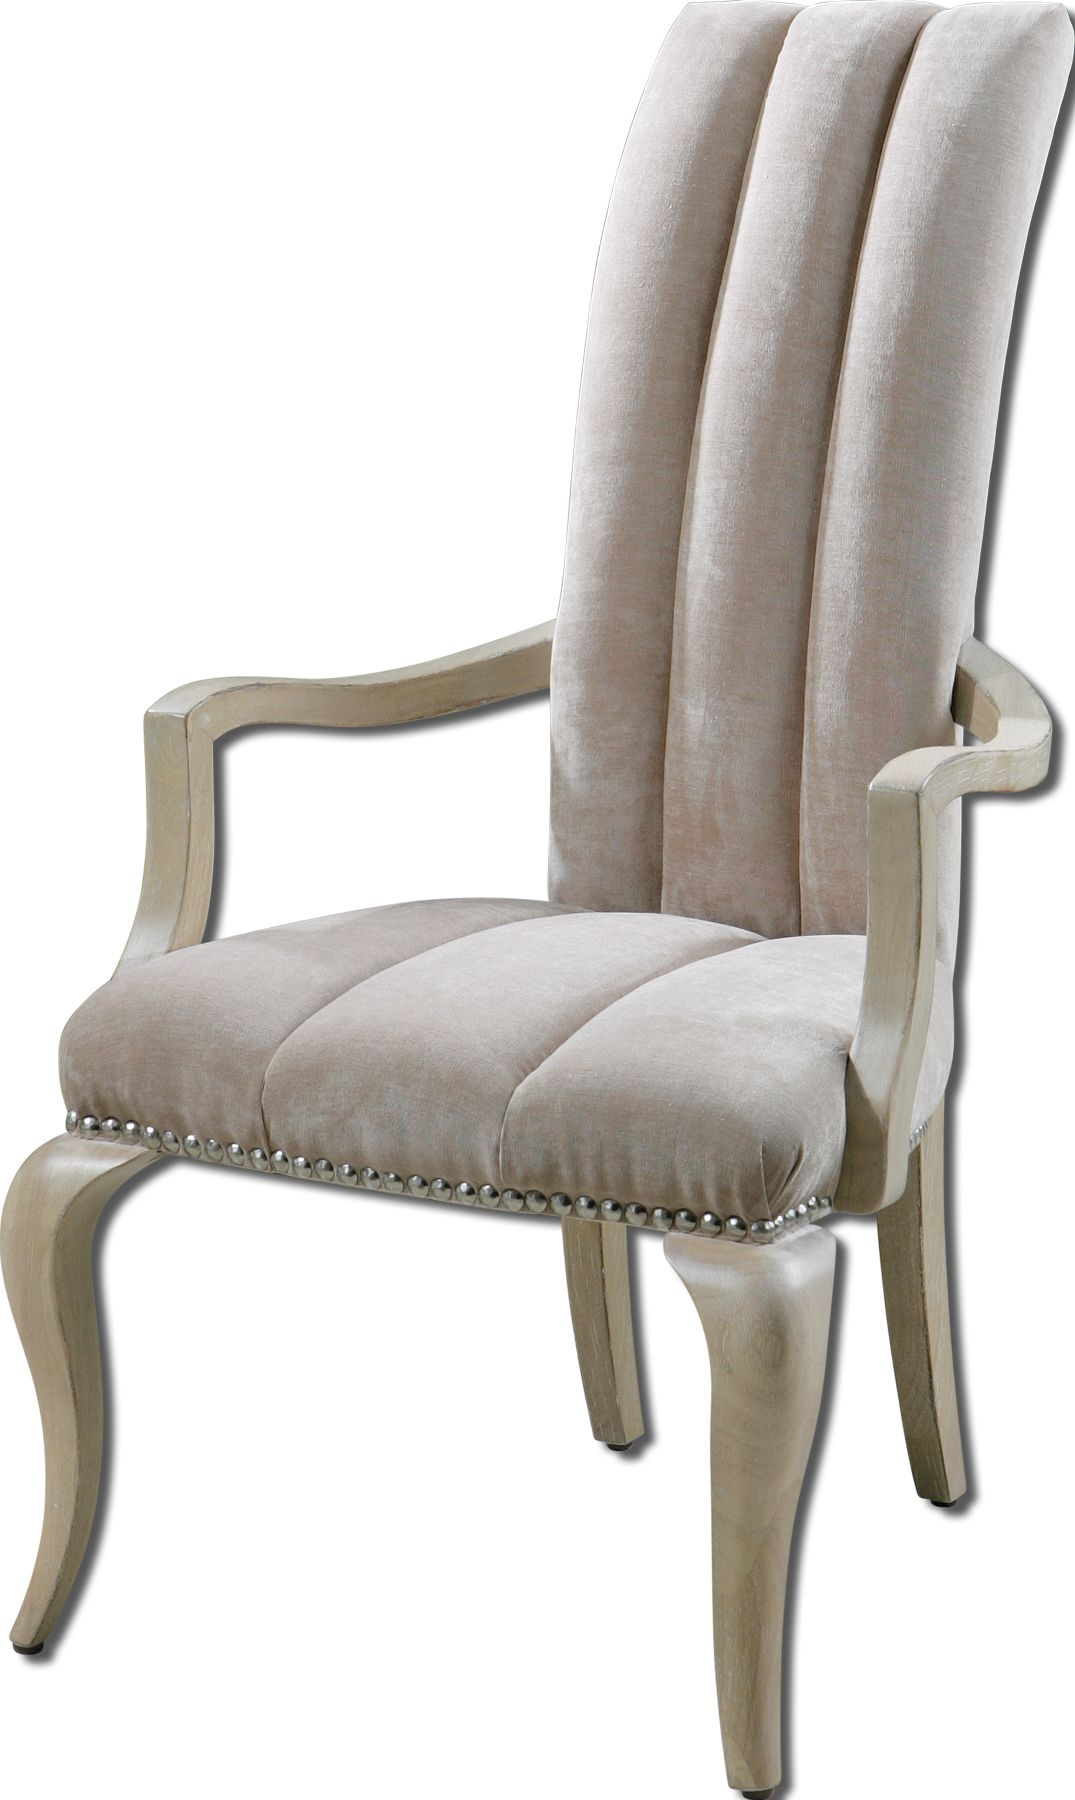 Uttermost 23103 Lynna Tufted Armchair